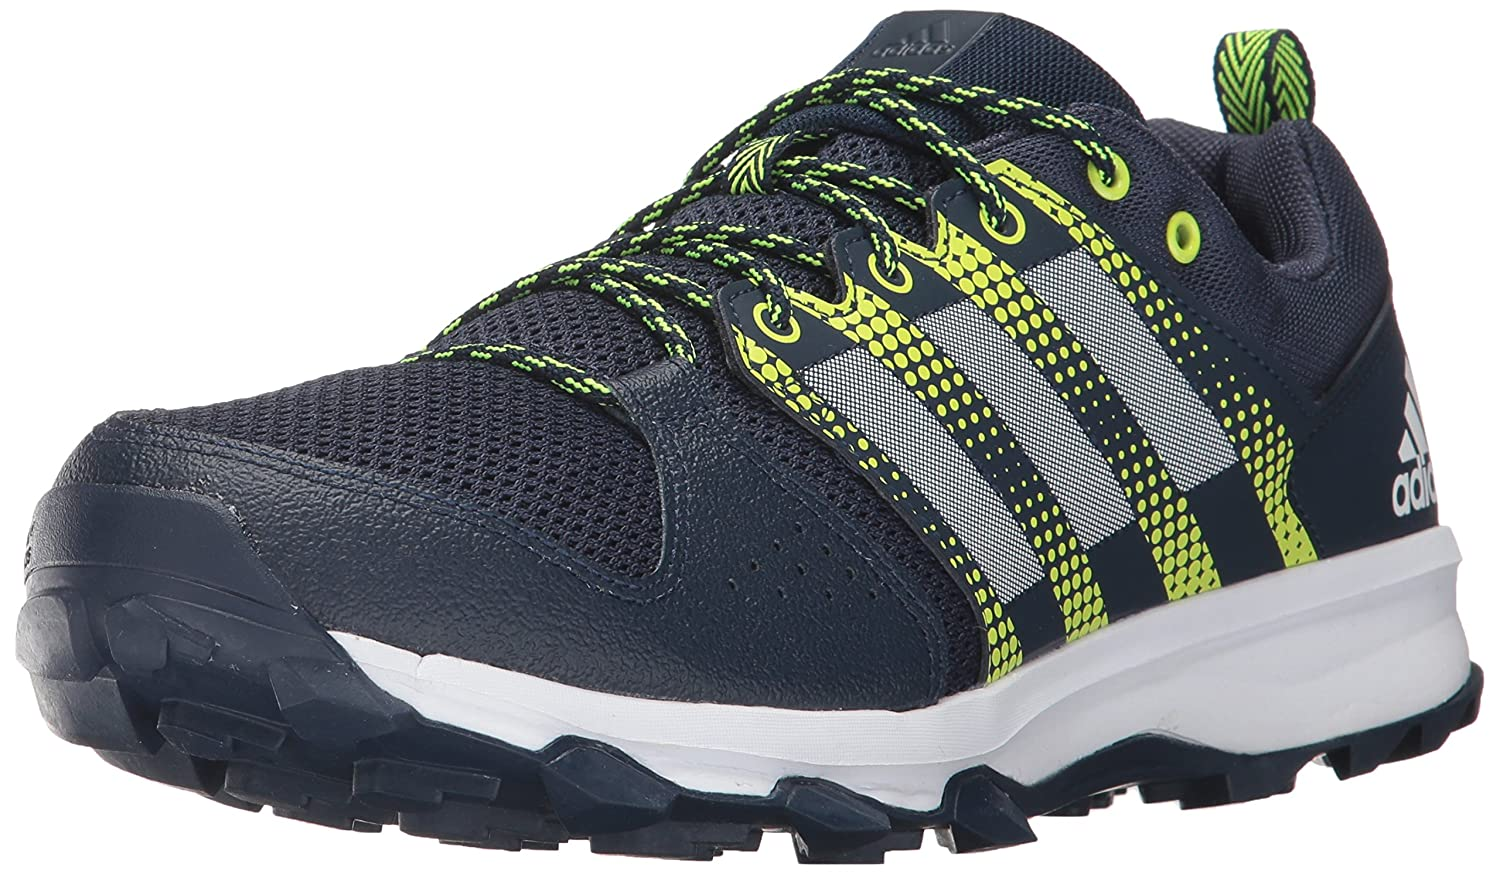 adidas Men's Galaxy M Trail Runner B01MY0SWGB 15 D(M) US|Collegiate Navy/White/Solar Yellow